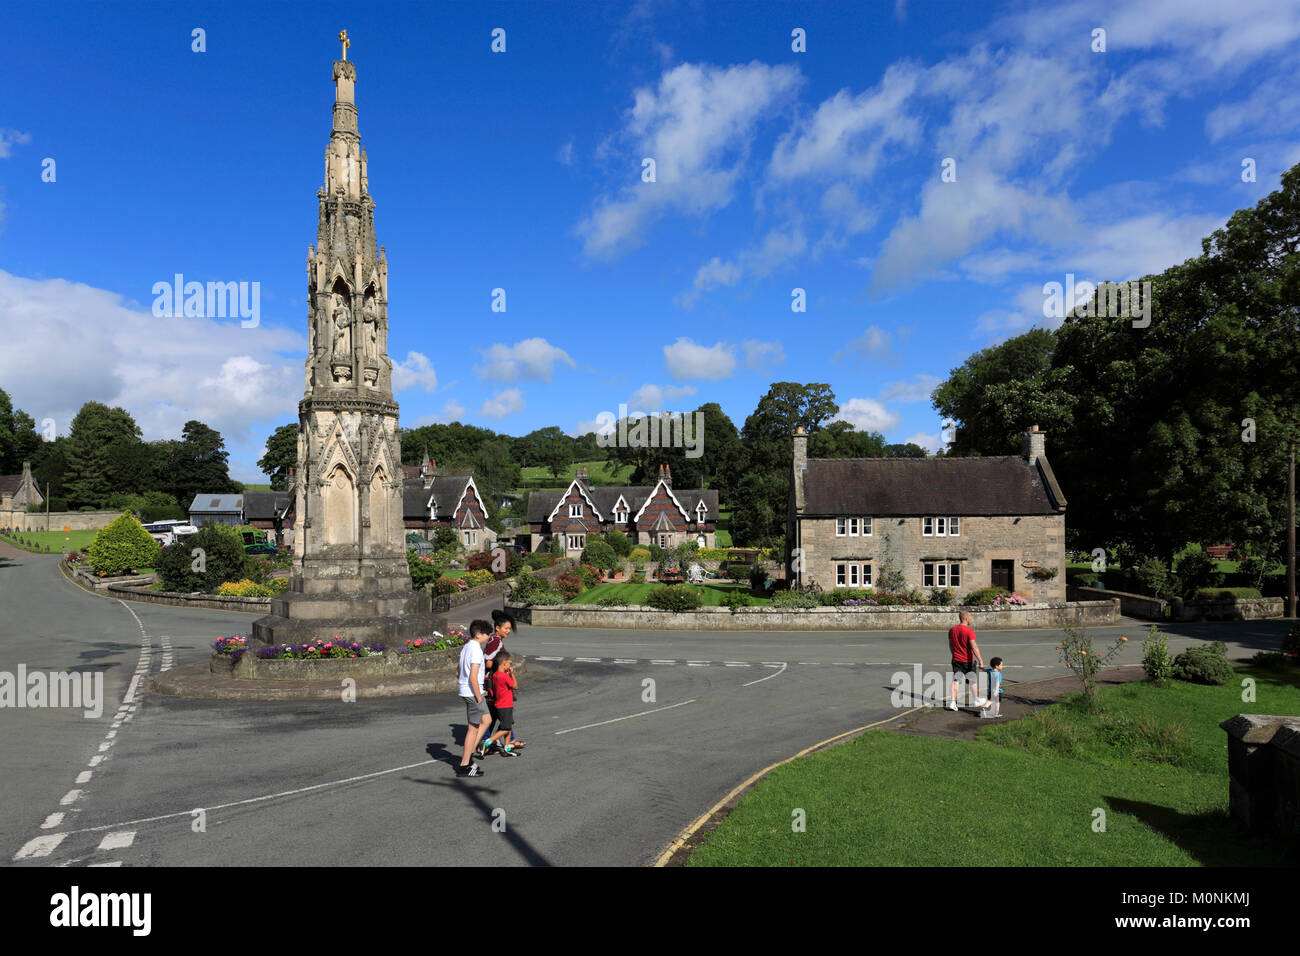 Memorial cross to Mary Watts Russell, Ilam village; Staffordshire; England; UK - Stock Image